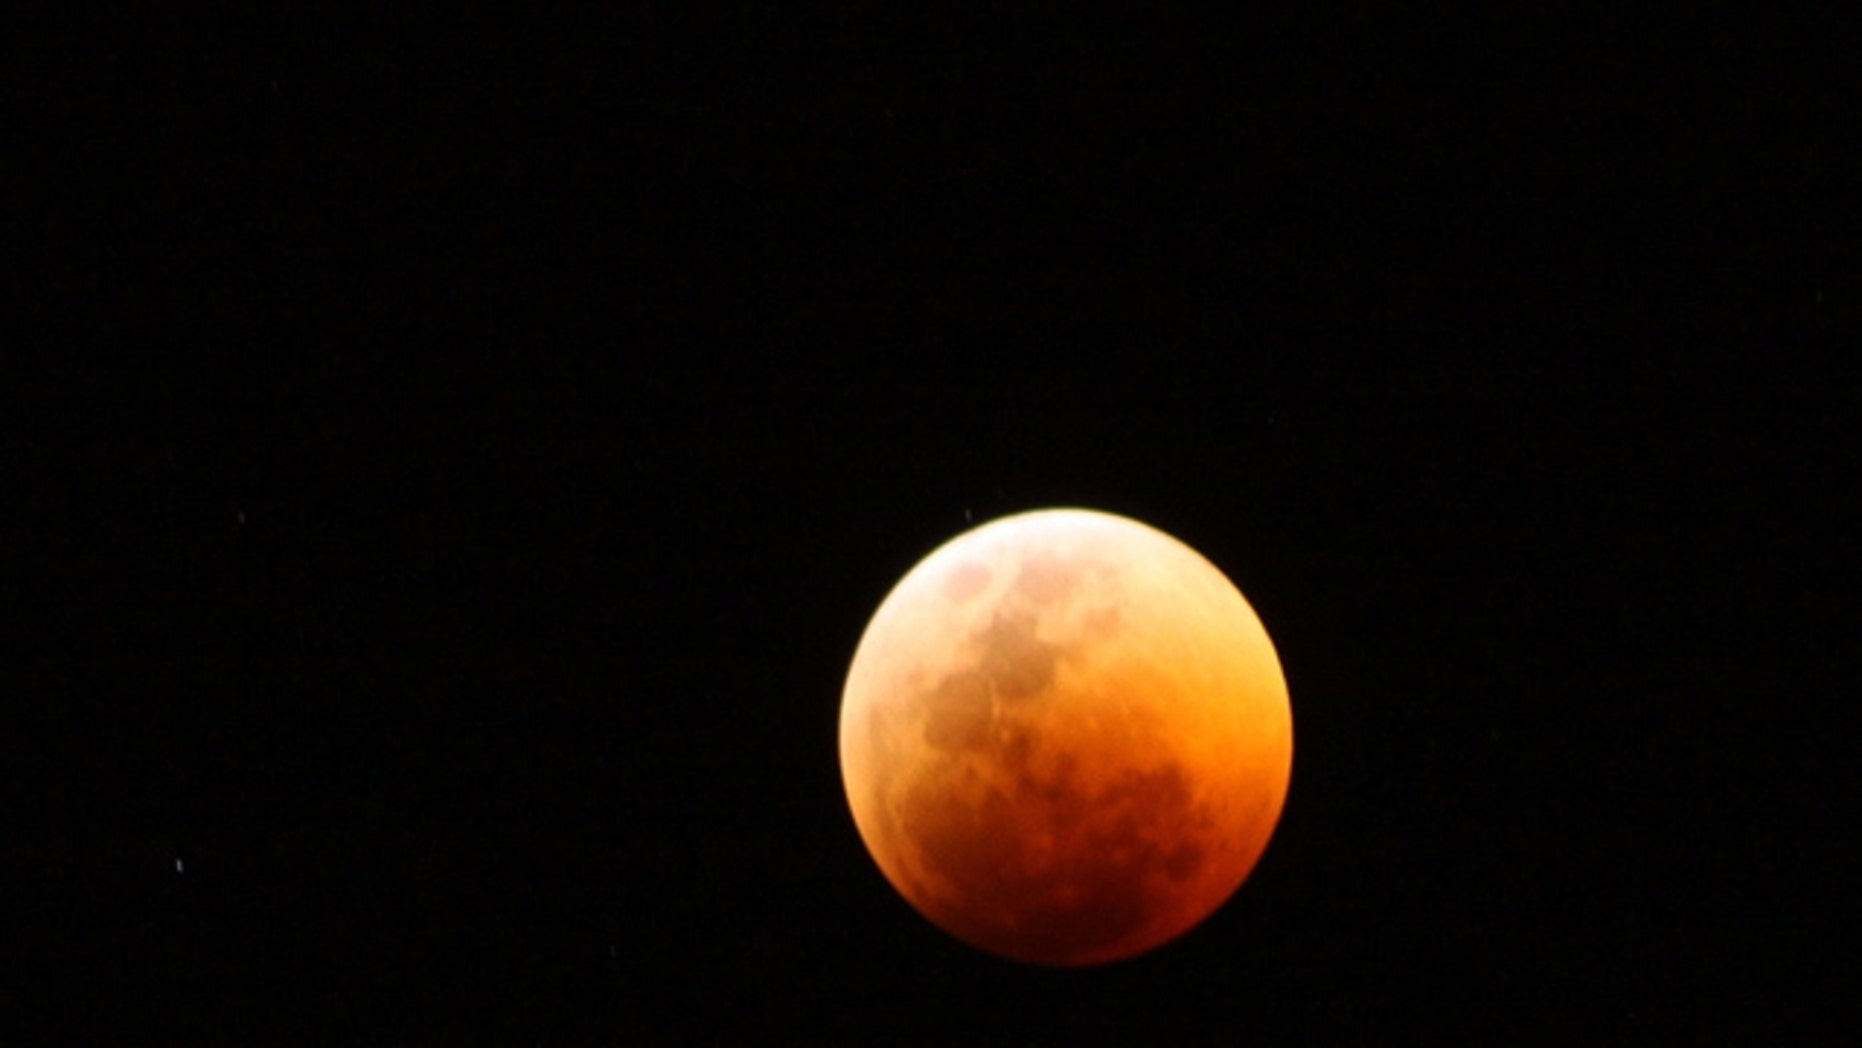 Skywatcher Derek Keats of Johannesburg, South Africa snapped this photo of the total lunar eclipse of June 15, 2011 with a Canon EOS 50D camera.